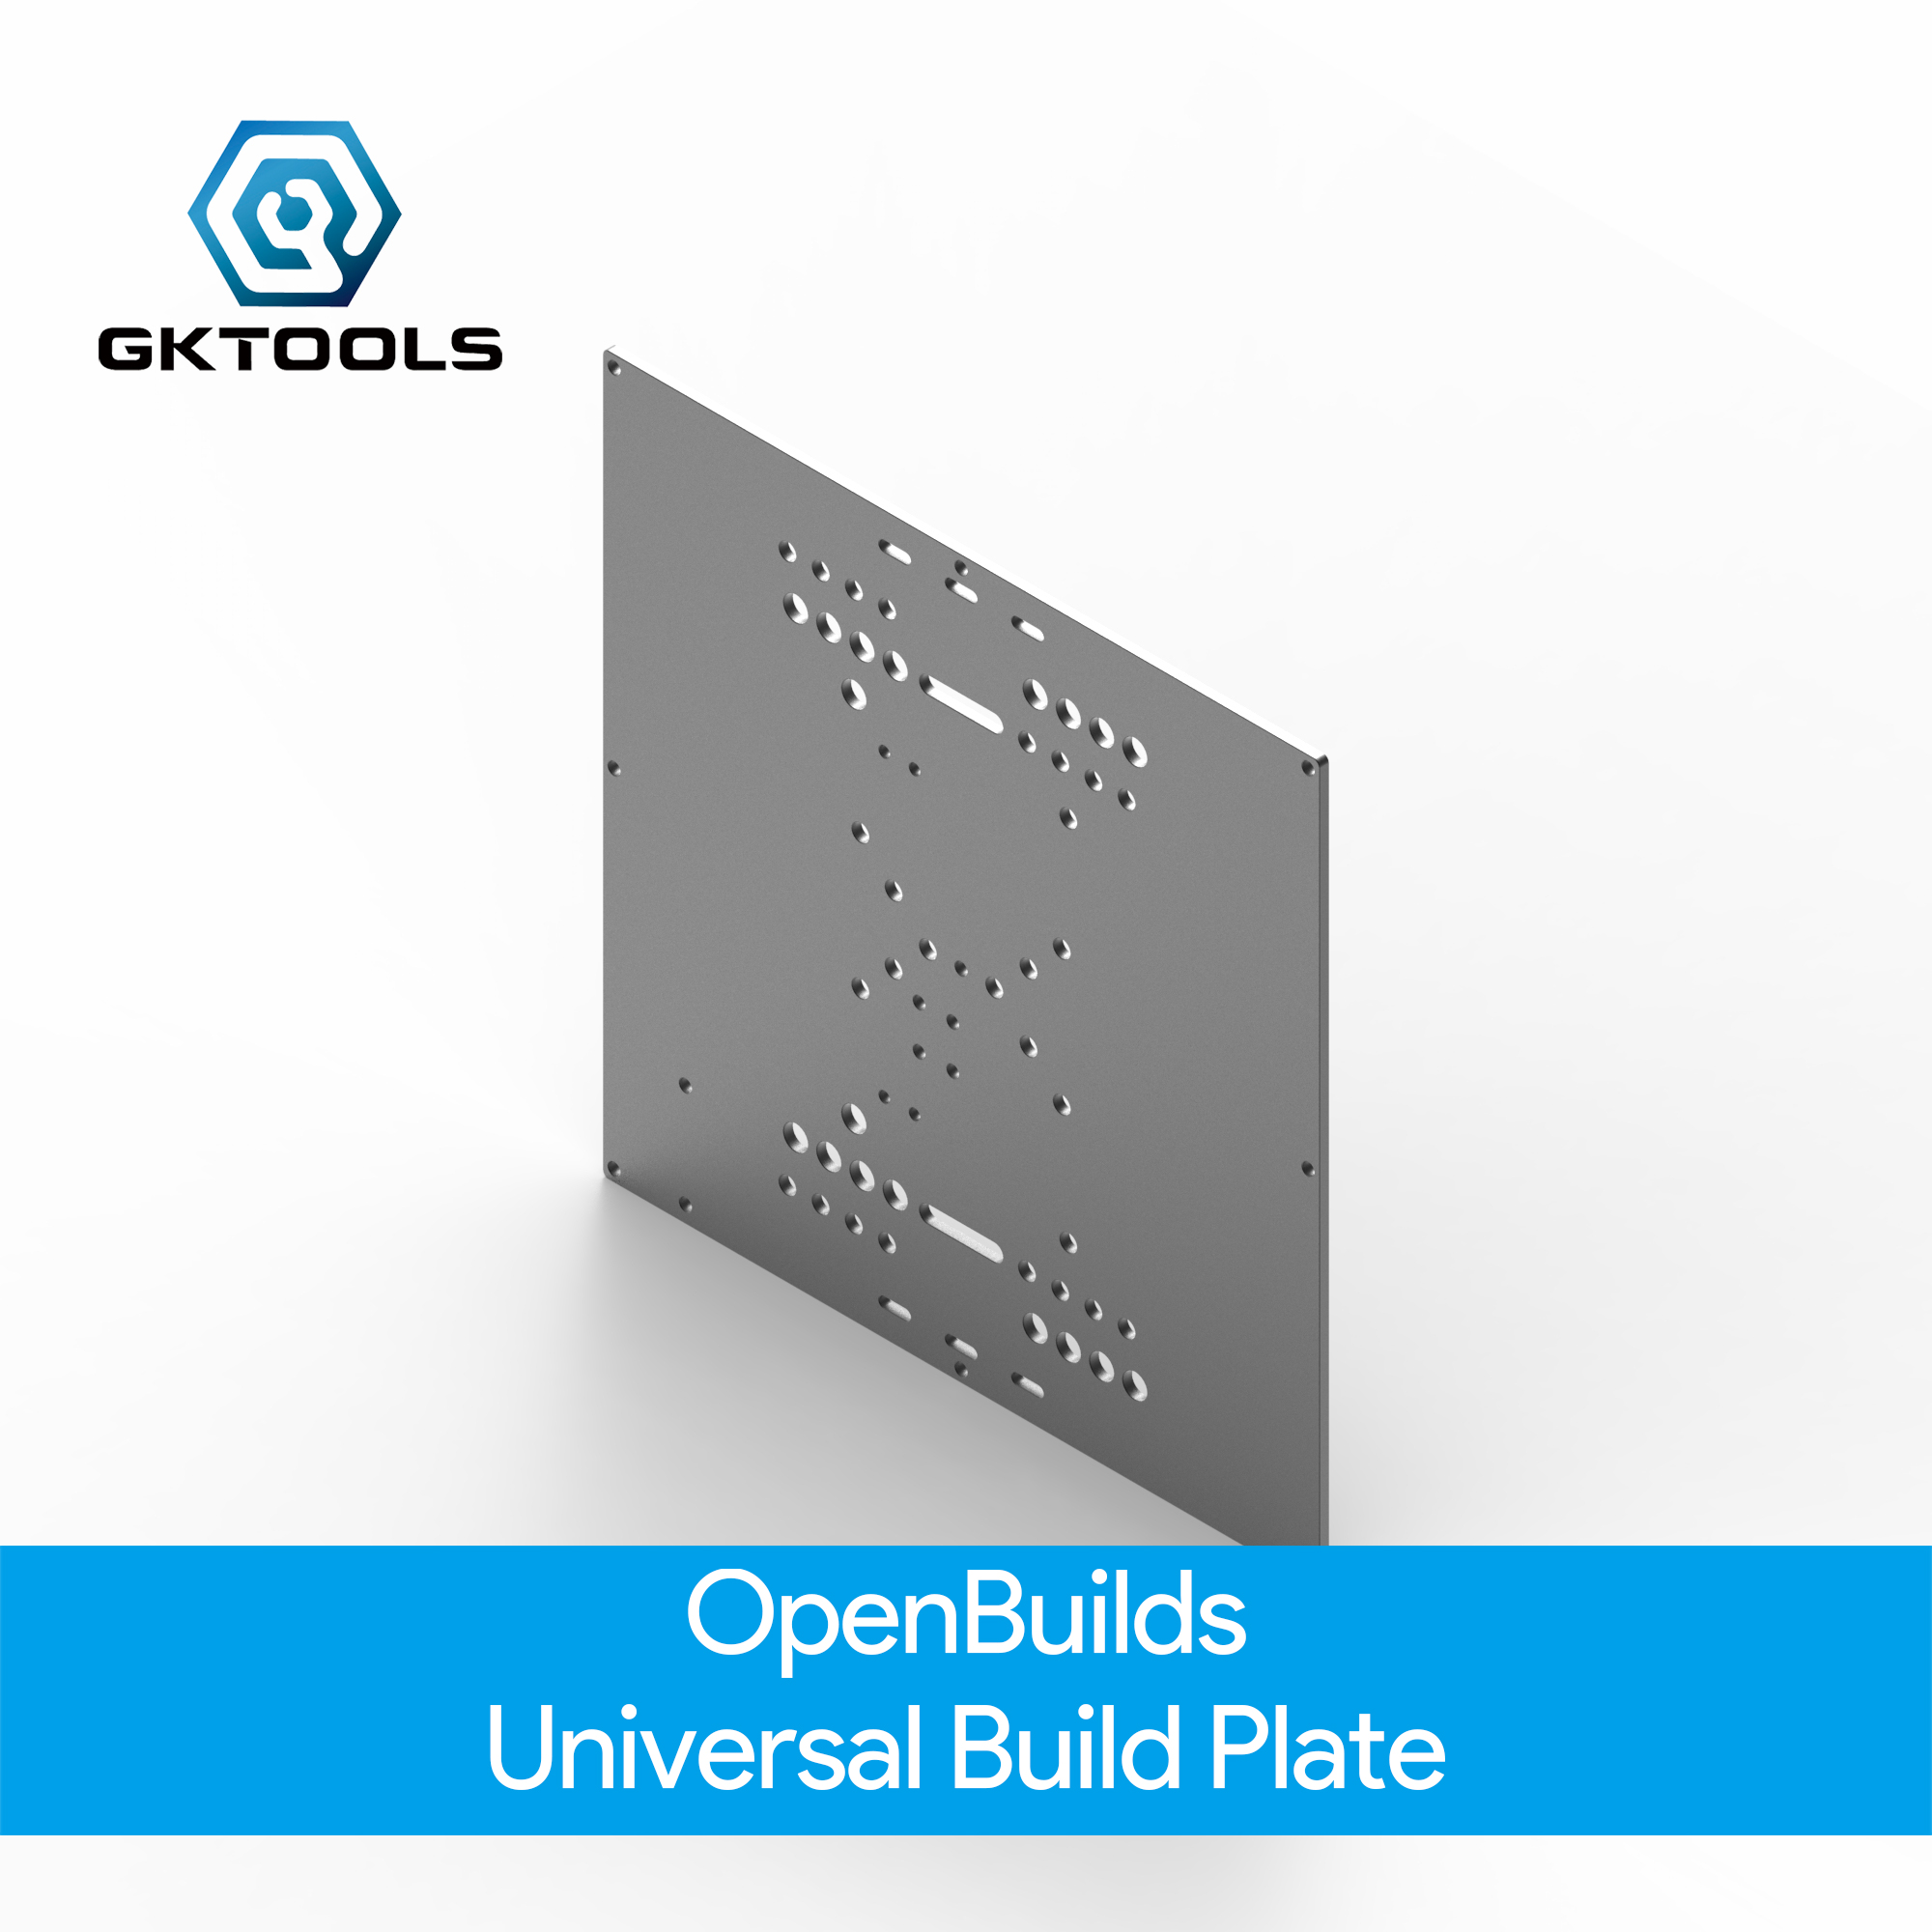 OpenBuilds Universal Build Plate